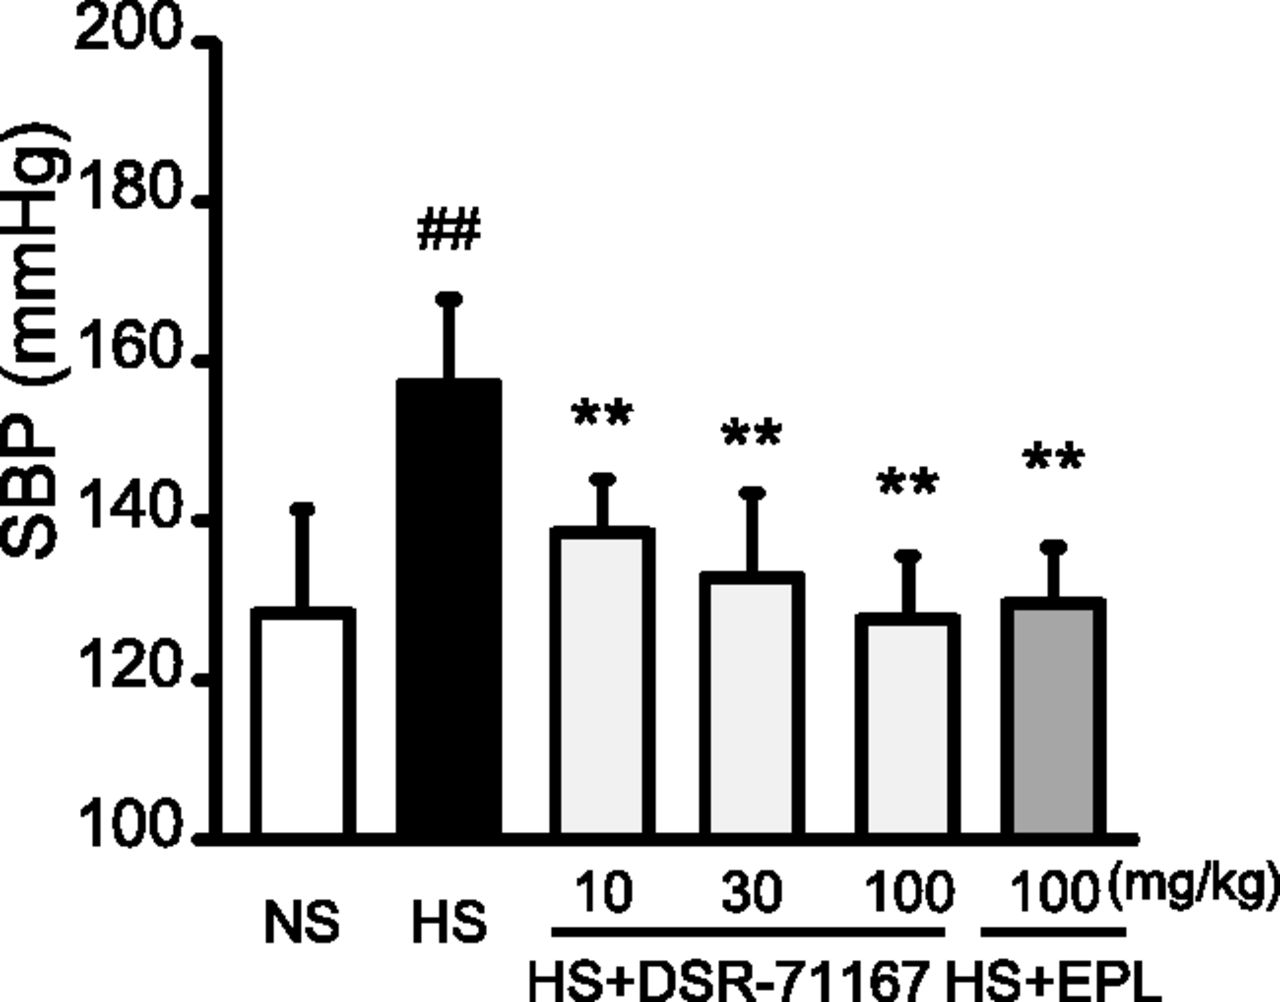 DSR-71167, a Novel Mineralocorticoid Receptor Antagonist with